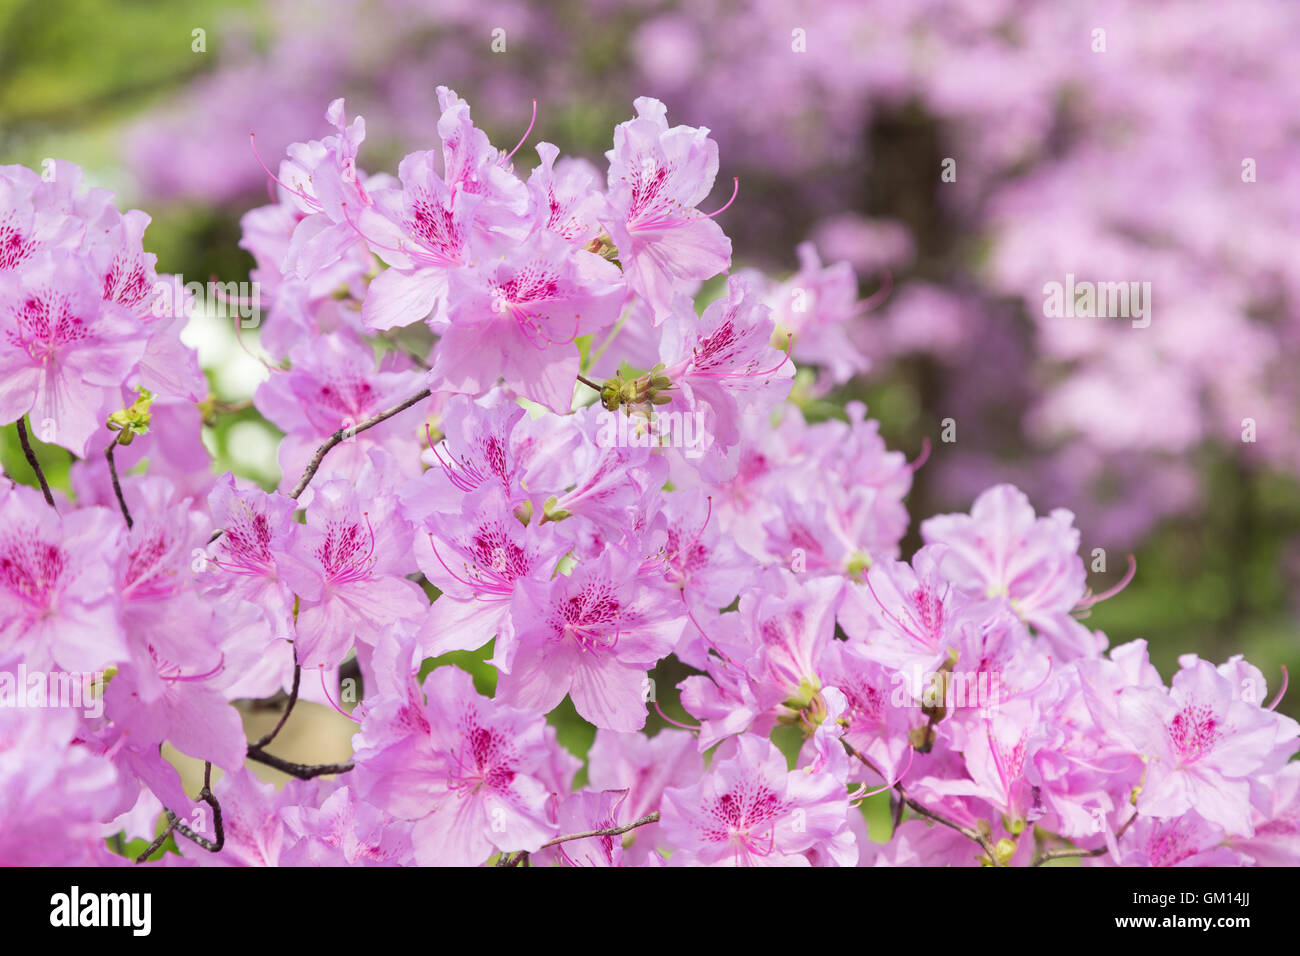 pink rhododendron stockfotos pink rhododendron bilder alamy. Black Bedroom Furniture Sets. Home Design Ideas